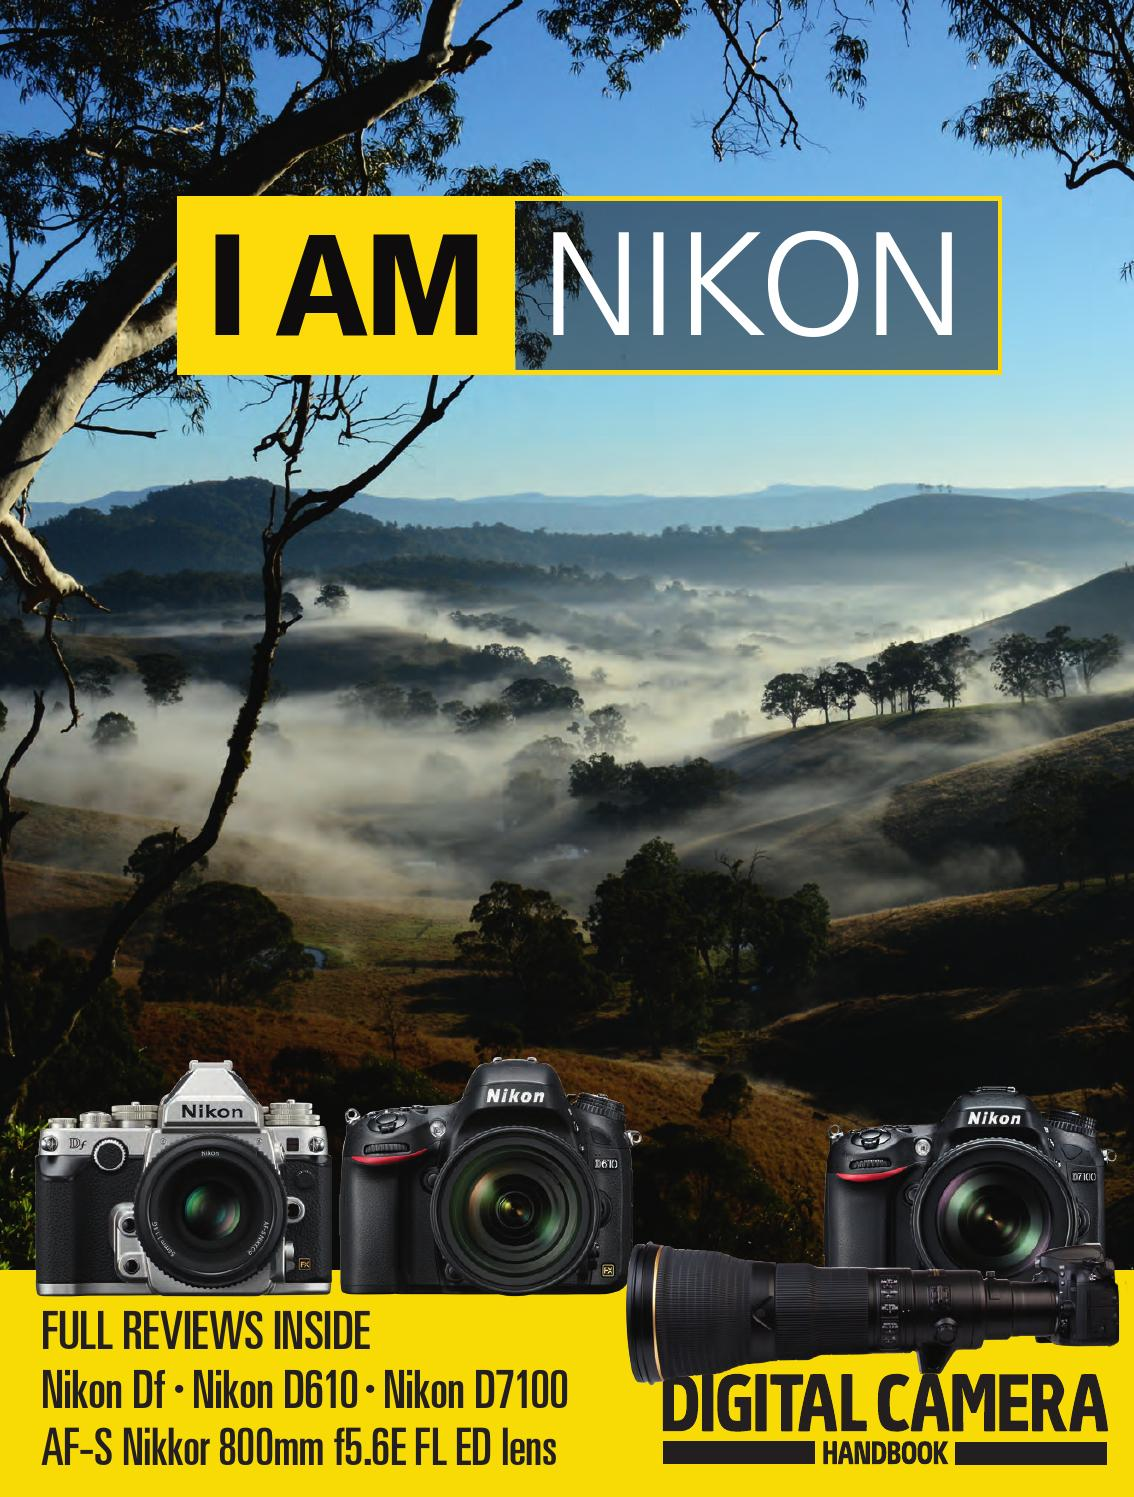 NIKON - Digital Camera Handbook by nextmedia Pty Ltd - issuu